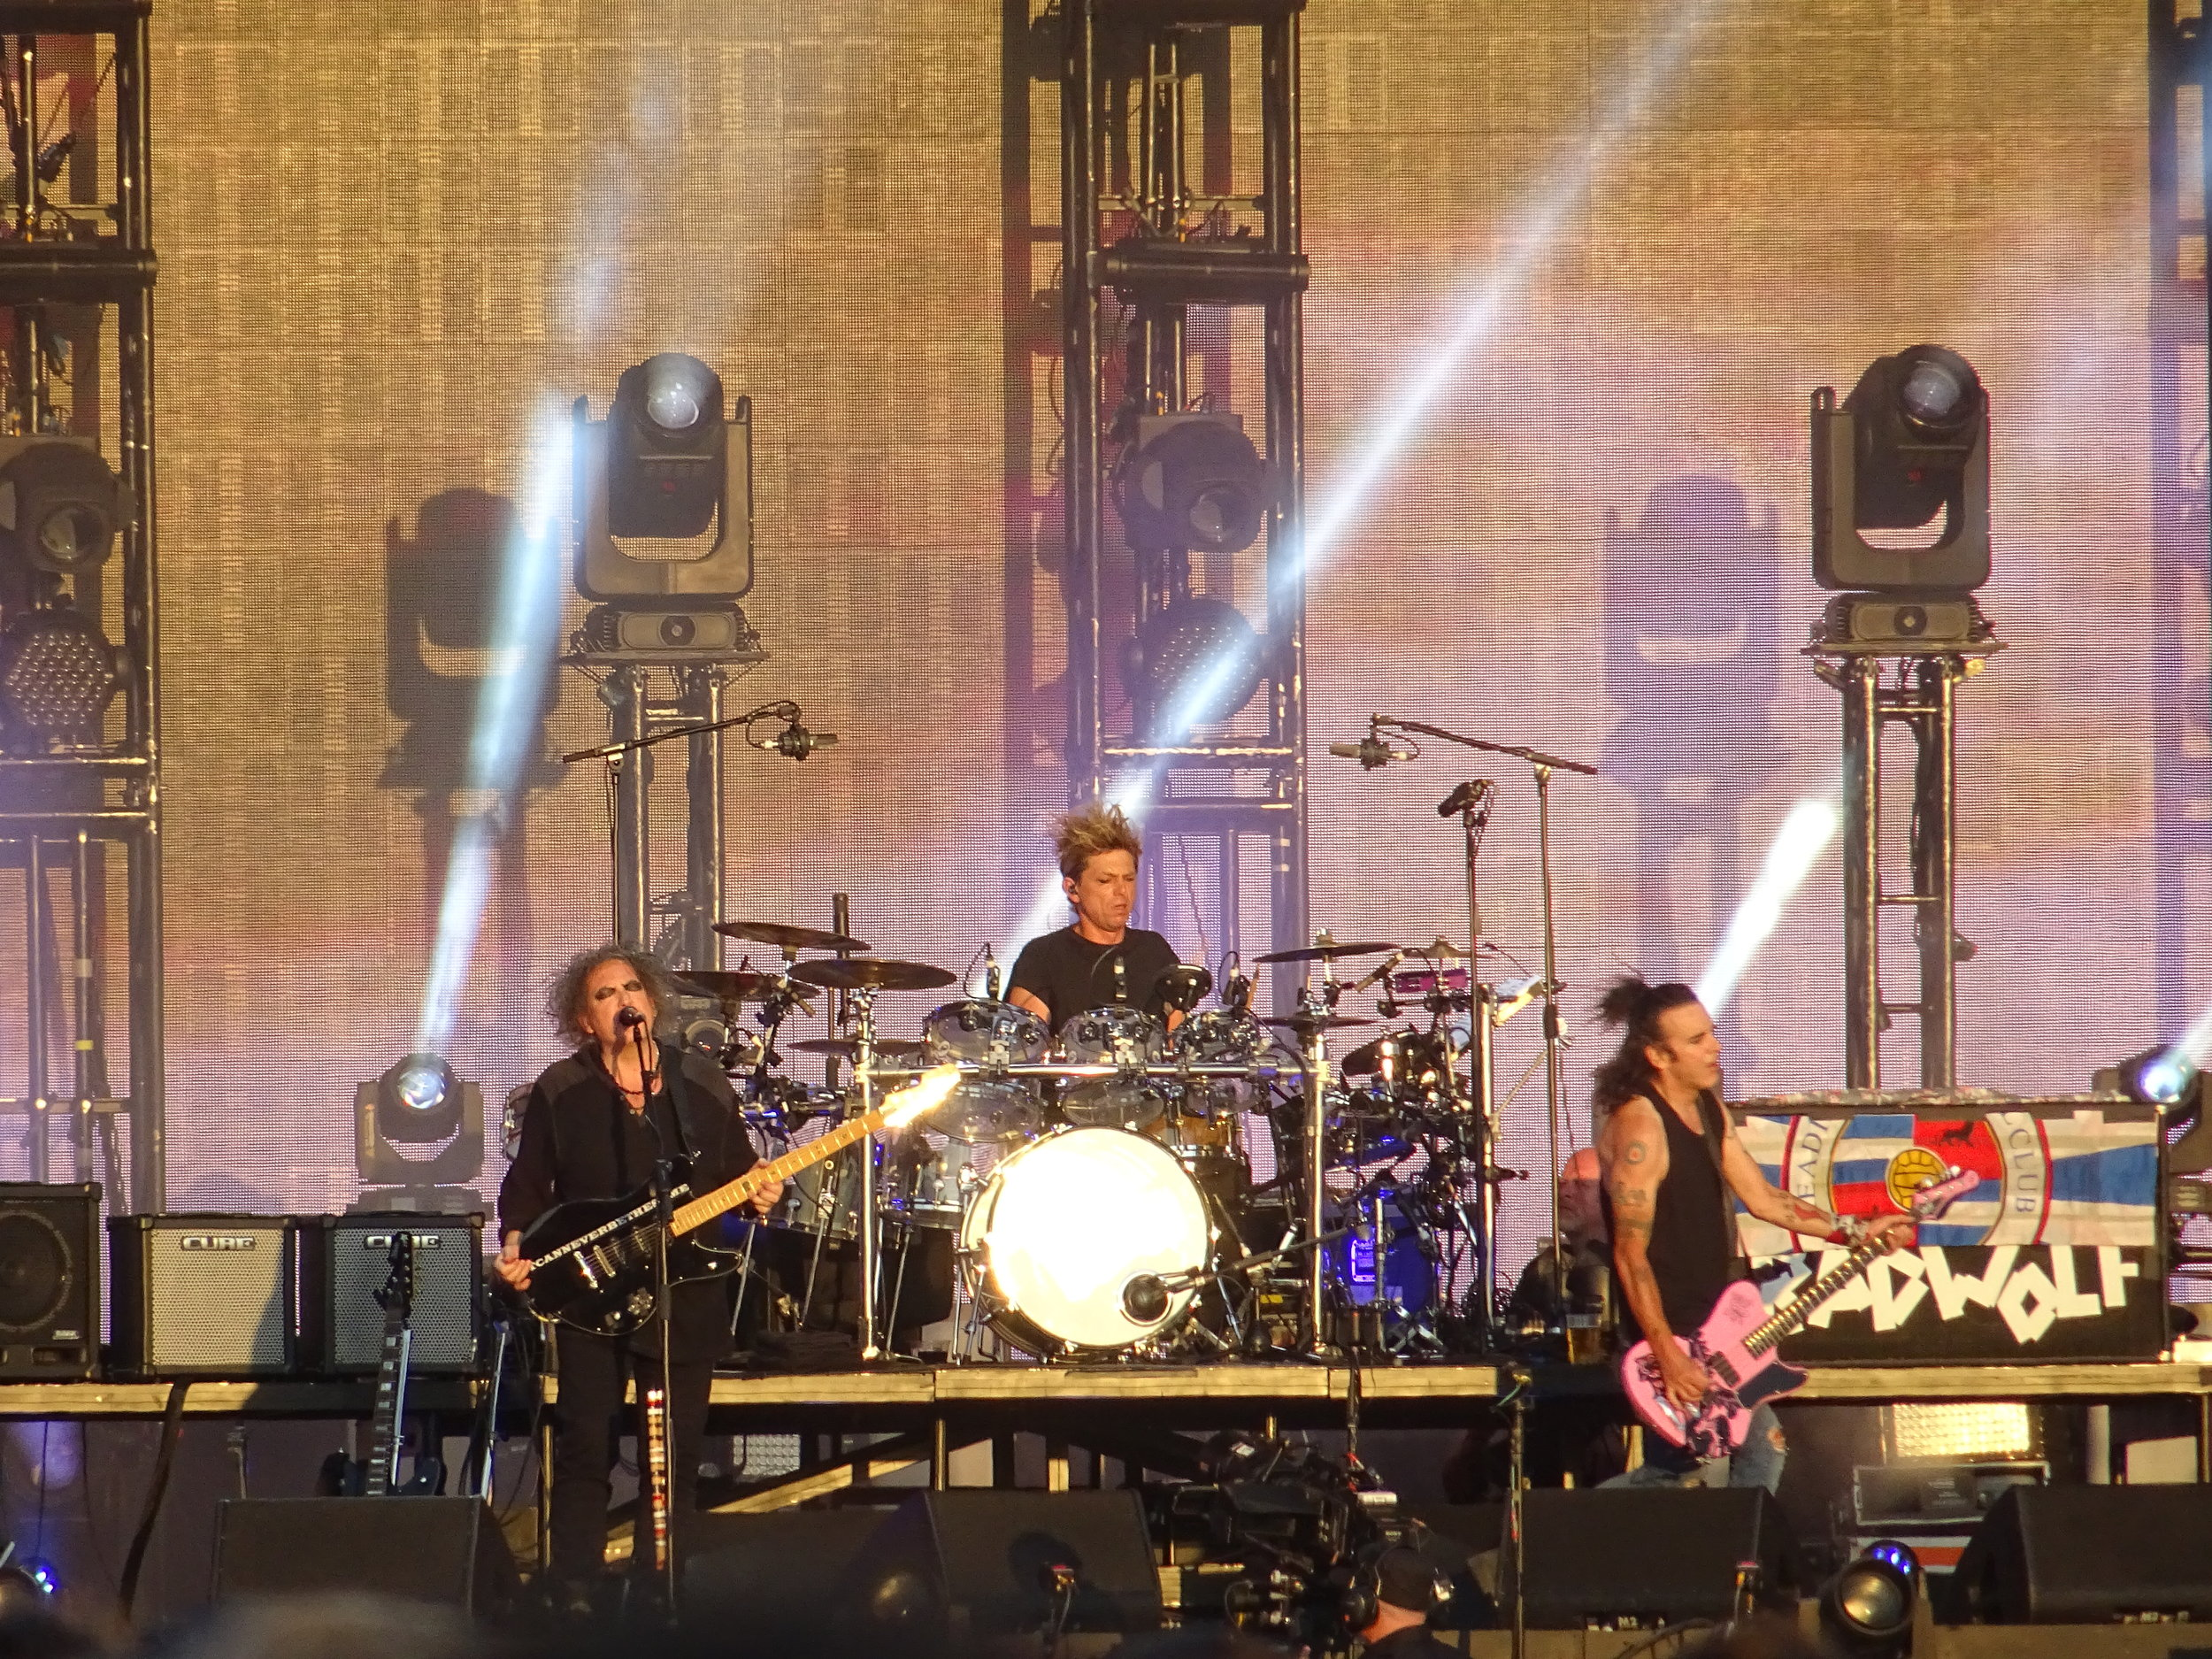 The CureHyde Park (7/7/2018) - The Cure celebrated their 40th Anniversary by playing a hit filled, career spanning set to 65,000 people in a sweltering Hyde Park.